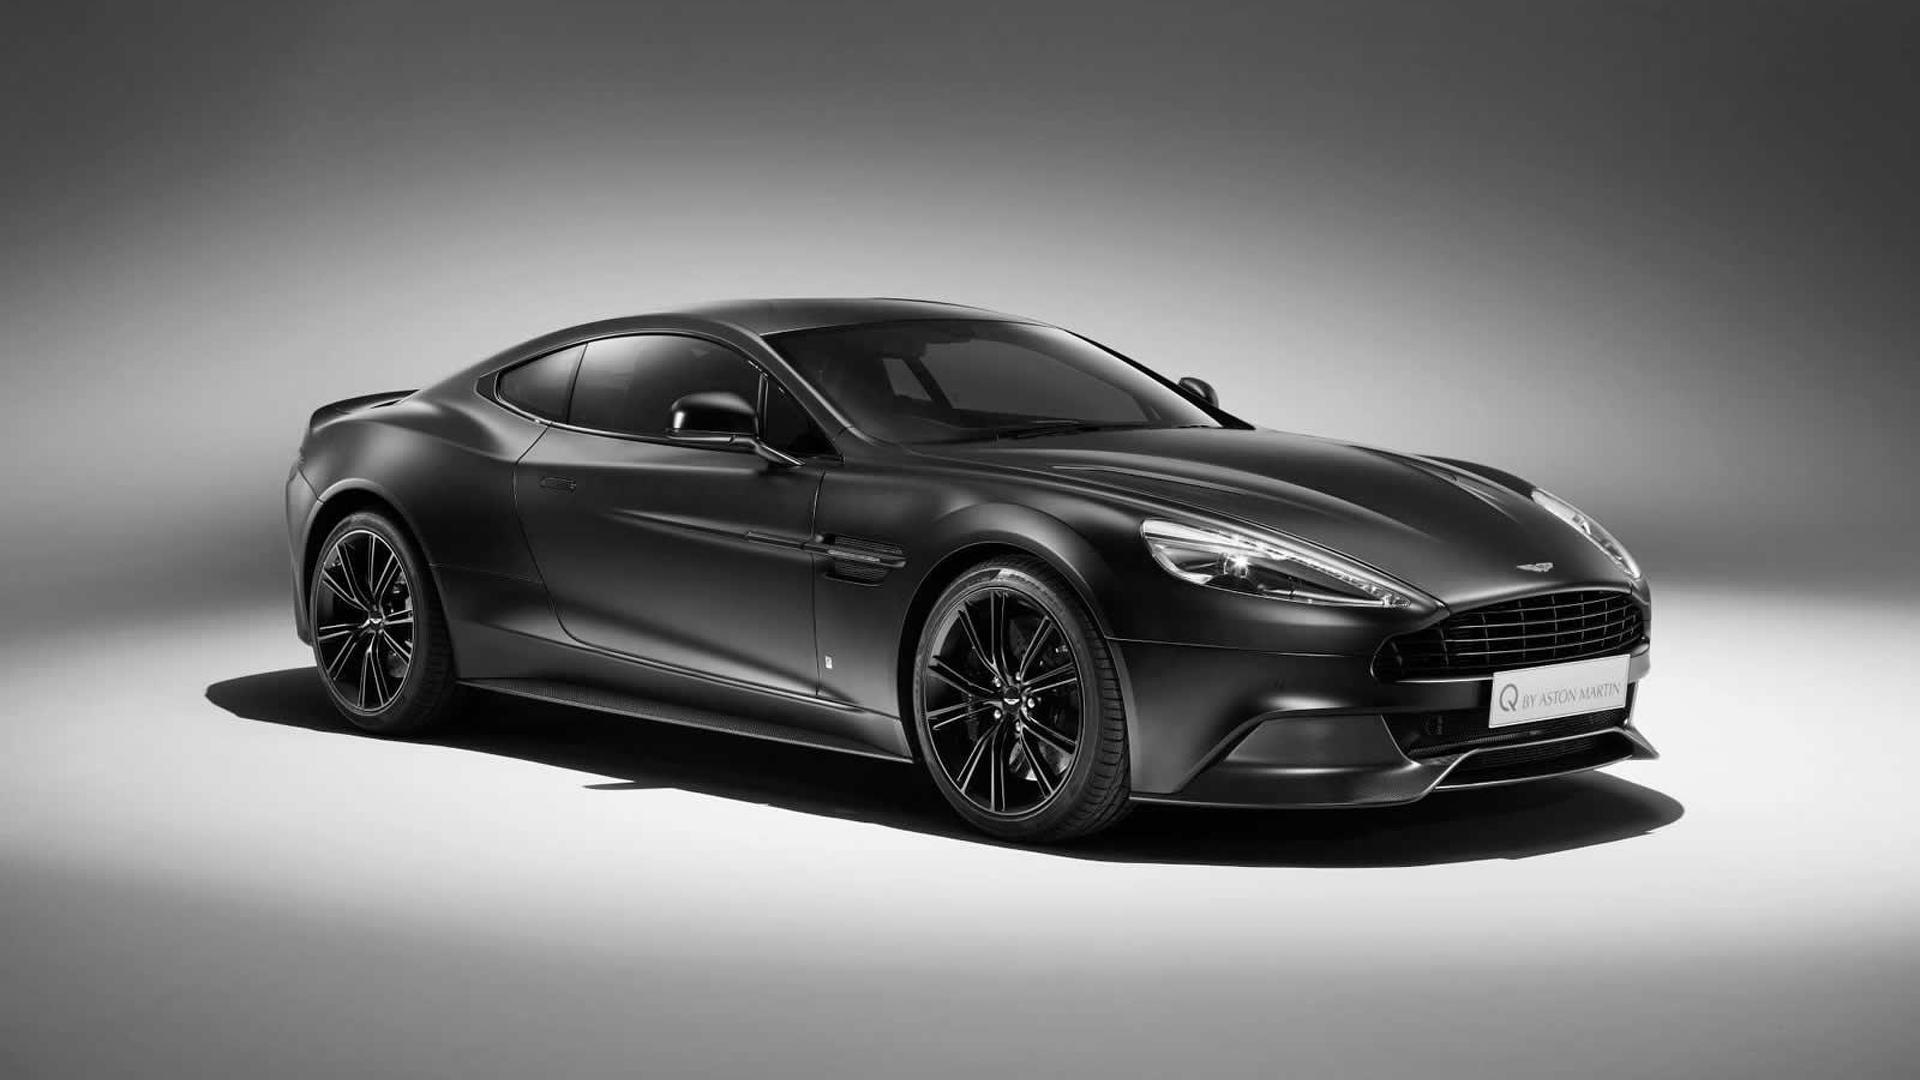 Aston Martin Db9 Vanquish Aston Martin Vantage Vanquish Replacements Coming By 2018